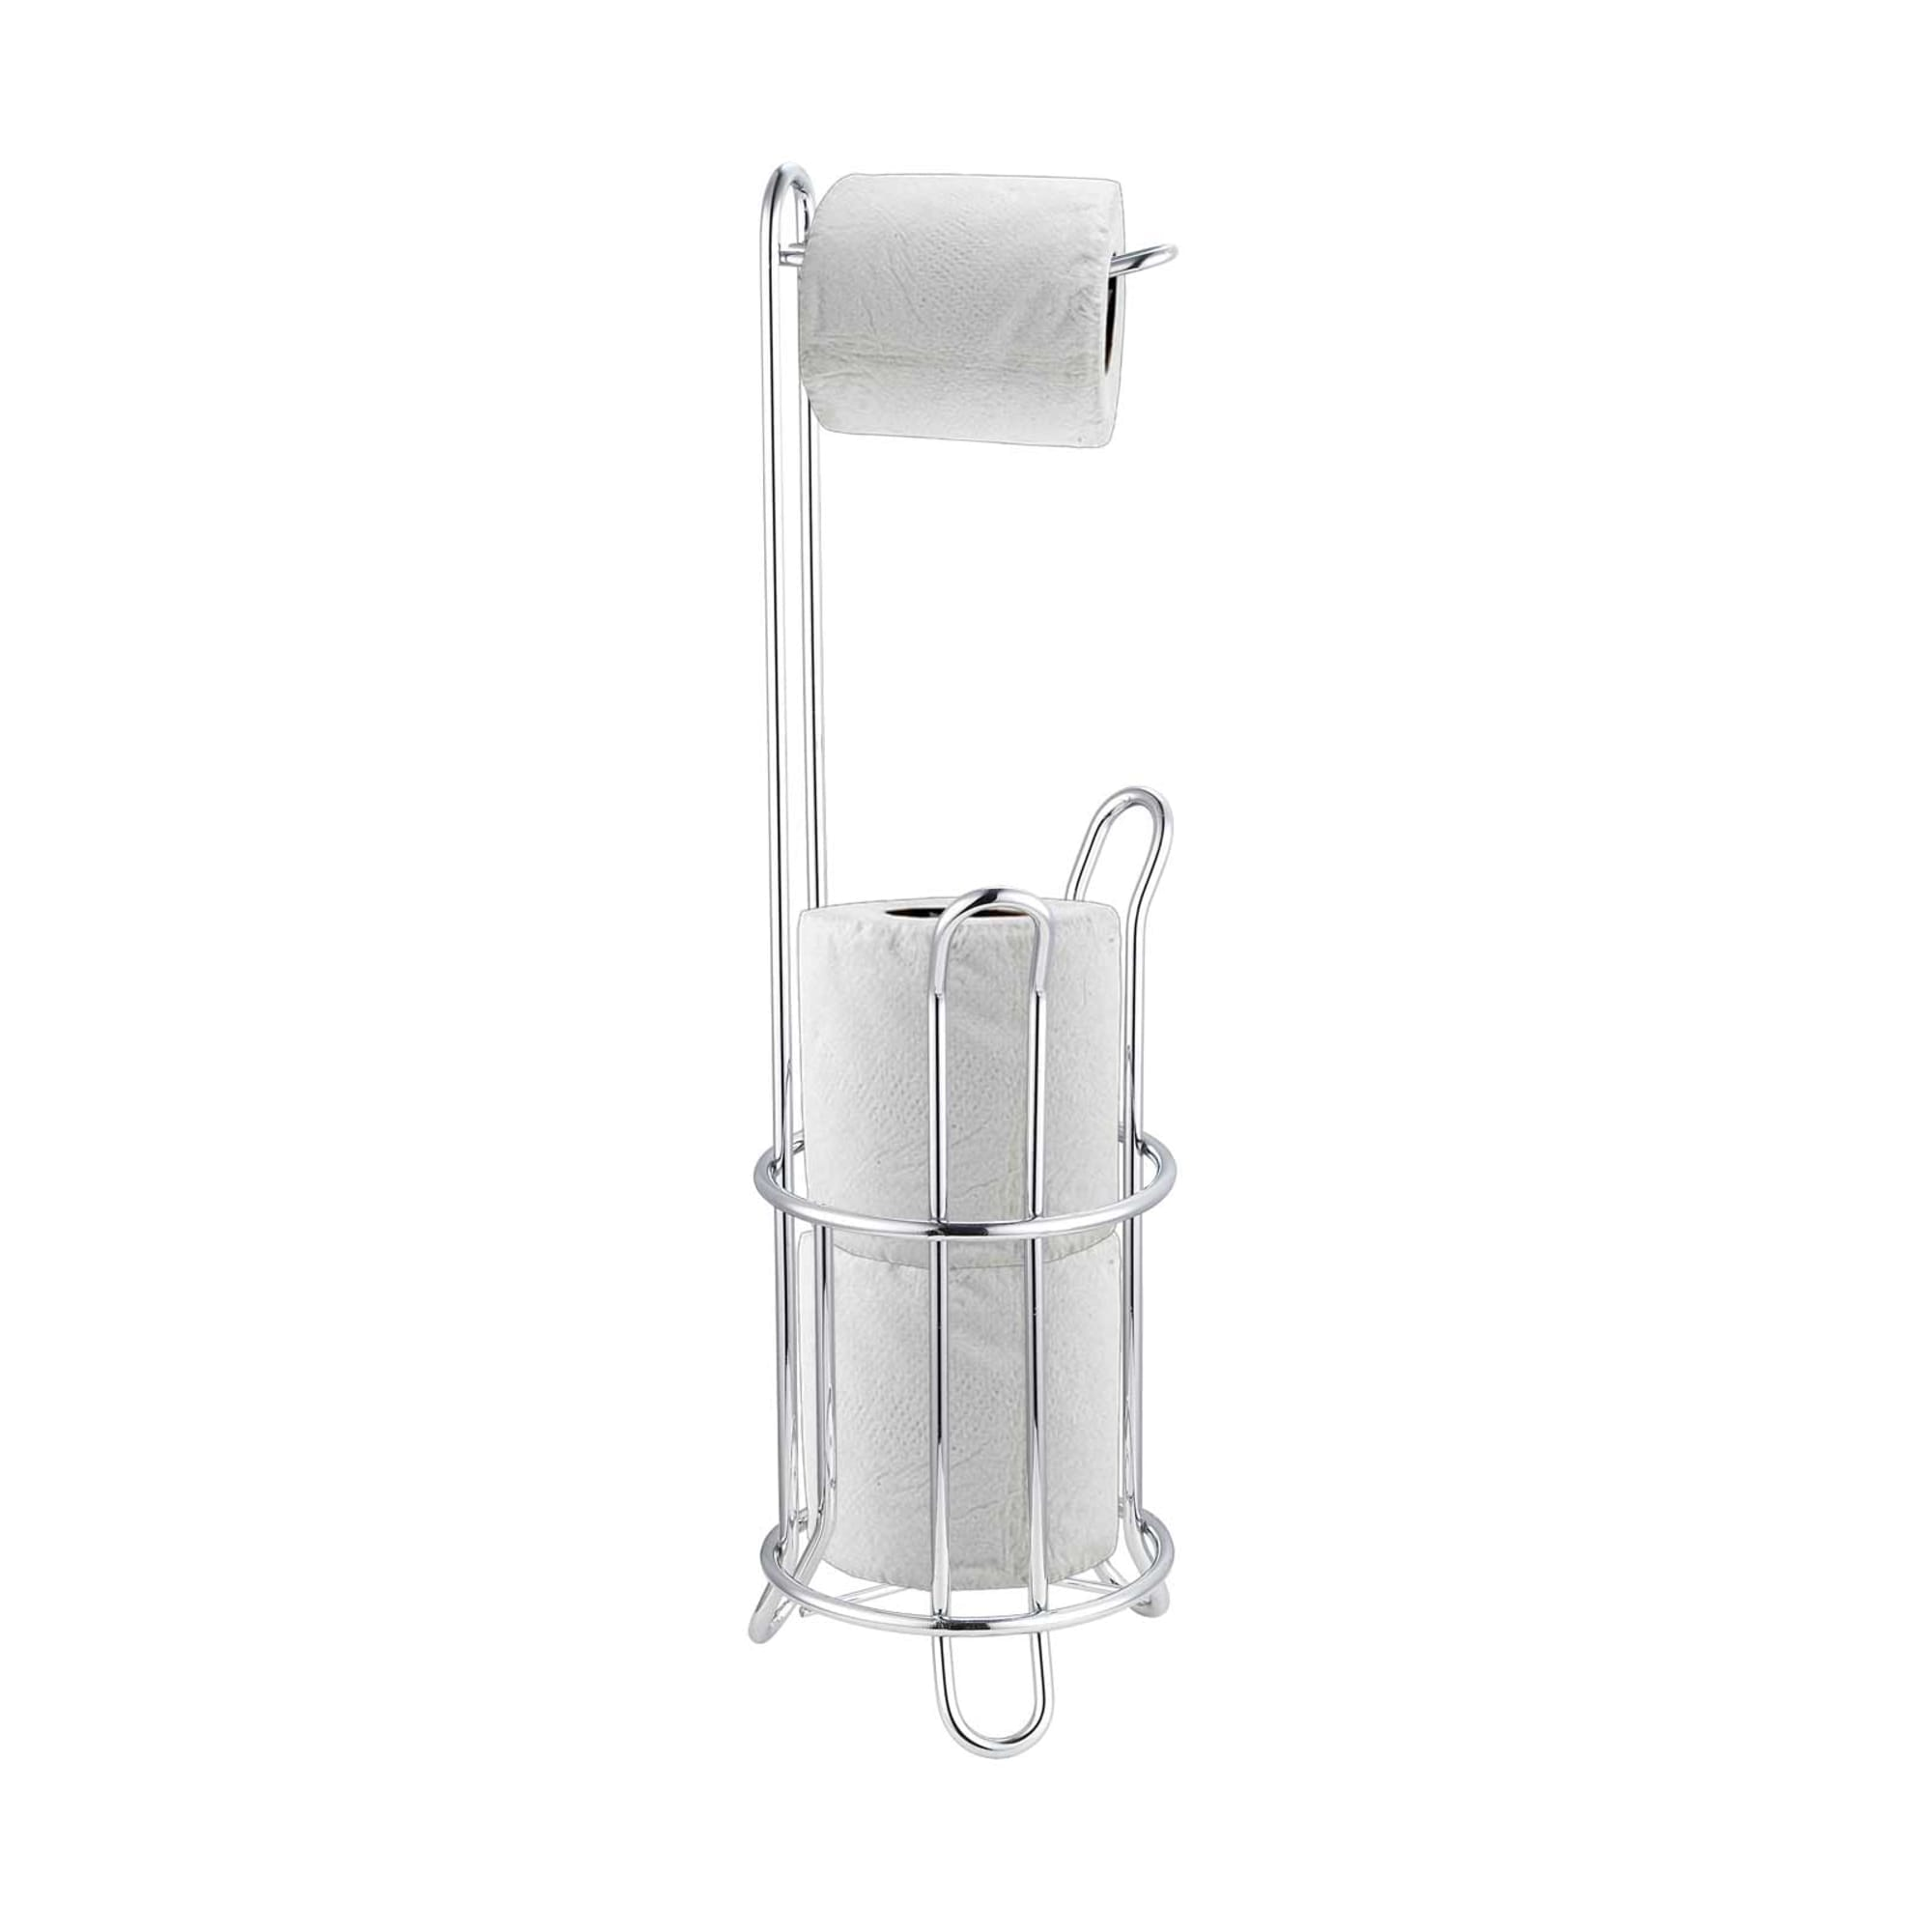 Heavy Duty Chrome Plated Steel Toilet Paper Holder